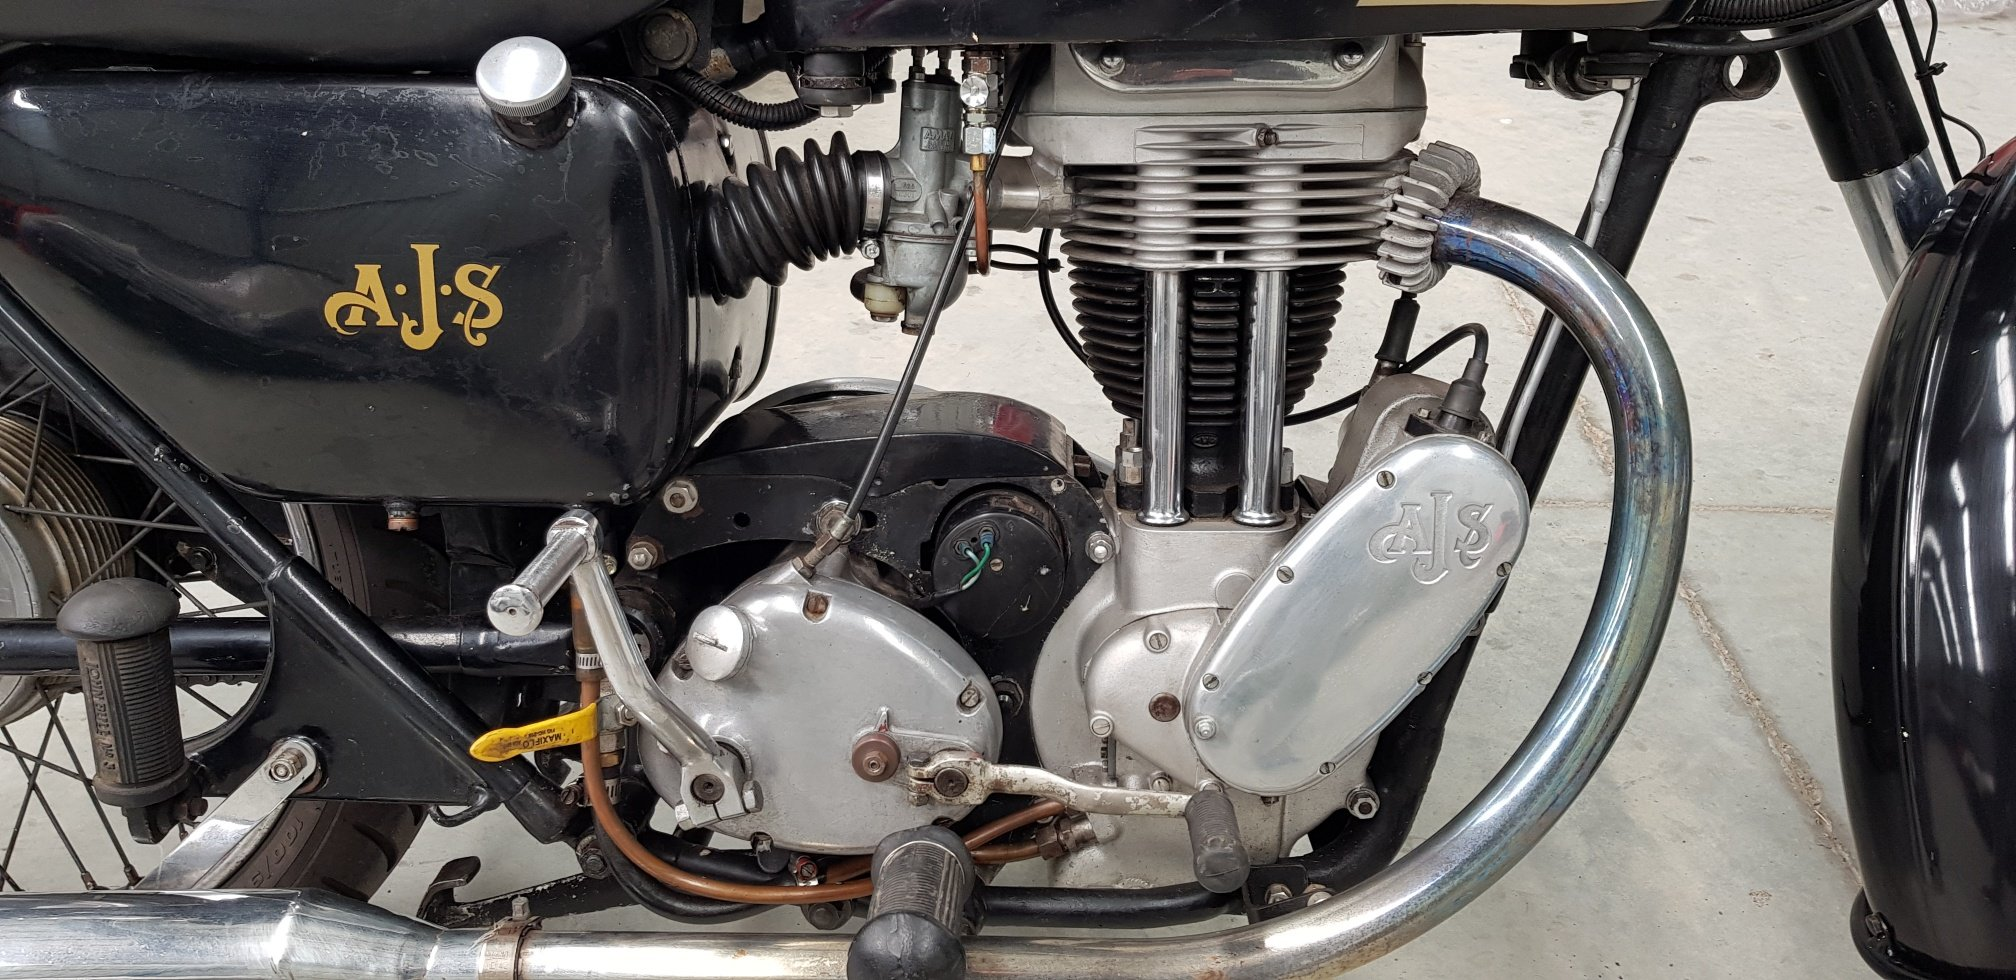 1956 AJS Single 350cc By Firma Trading Australia For Sale (picture 3 of 6)